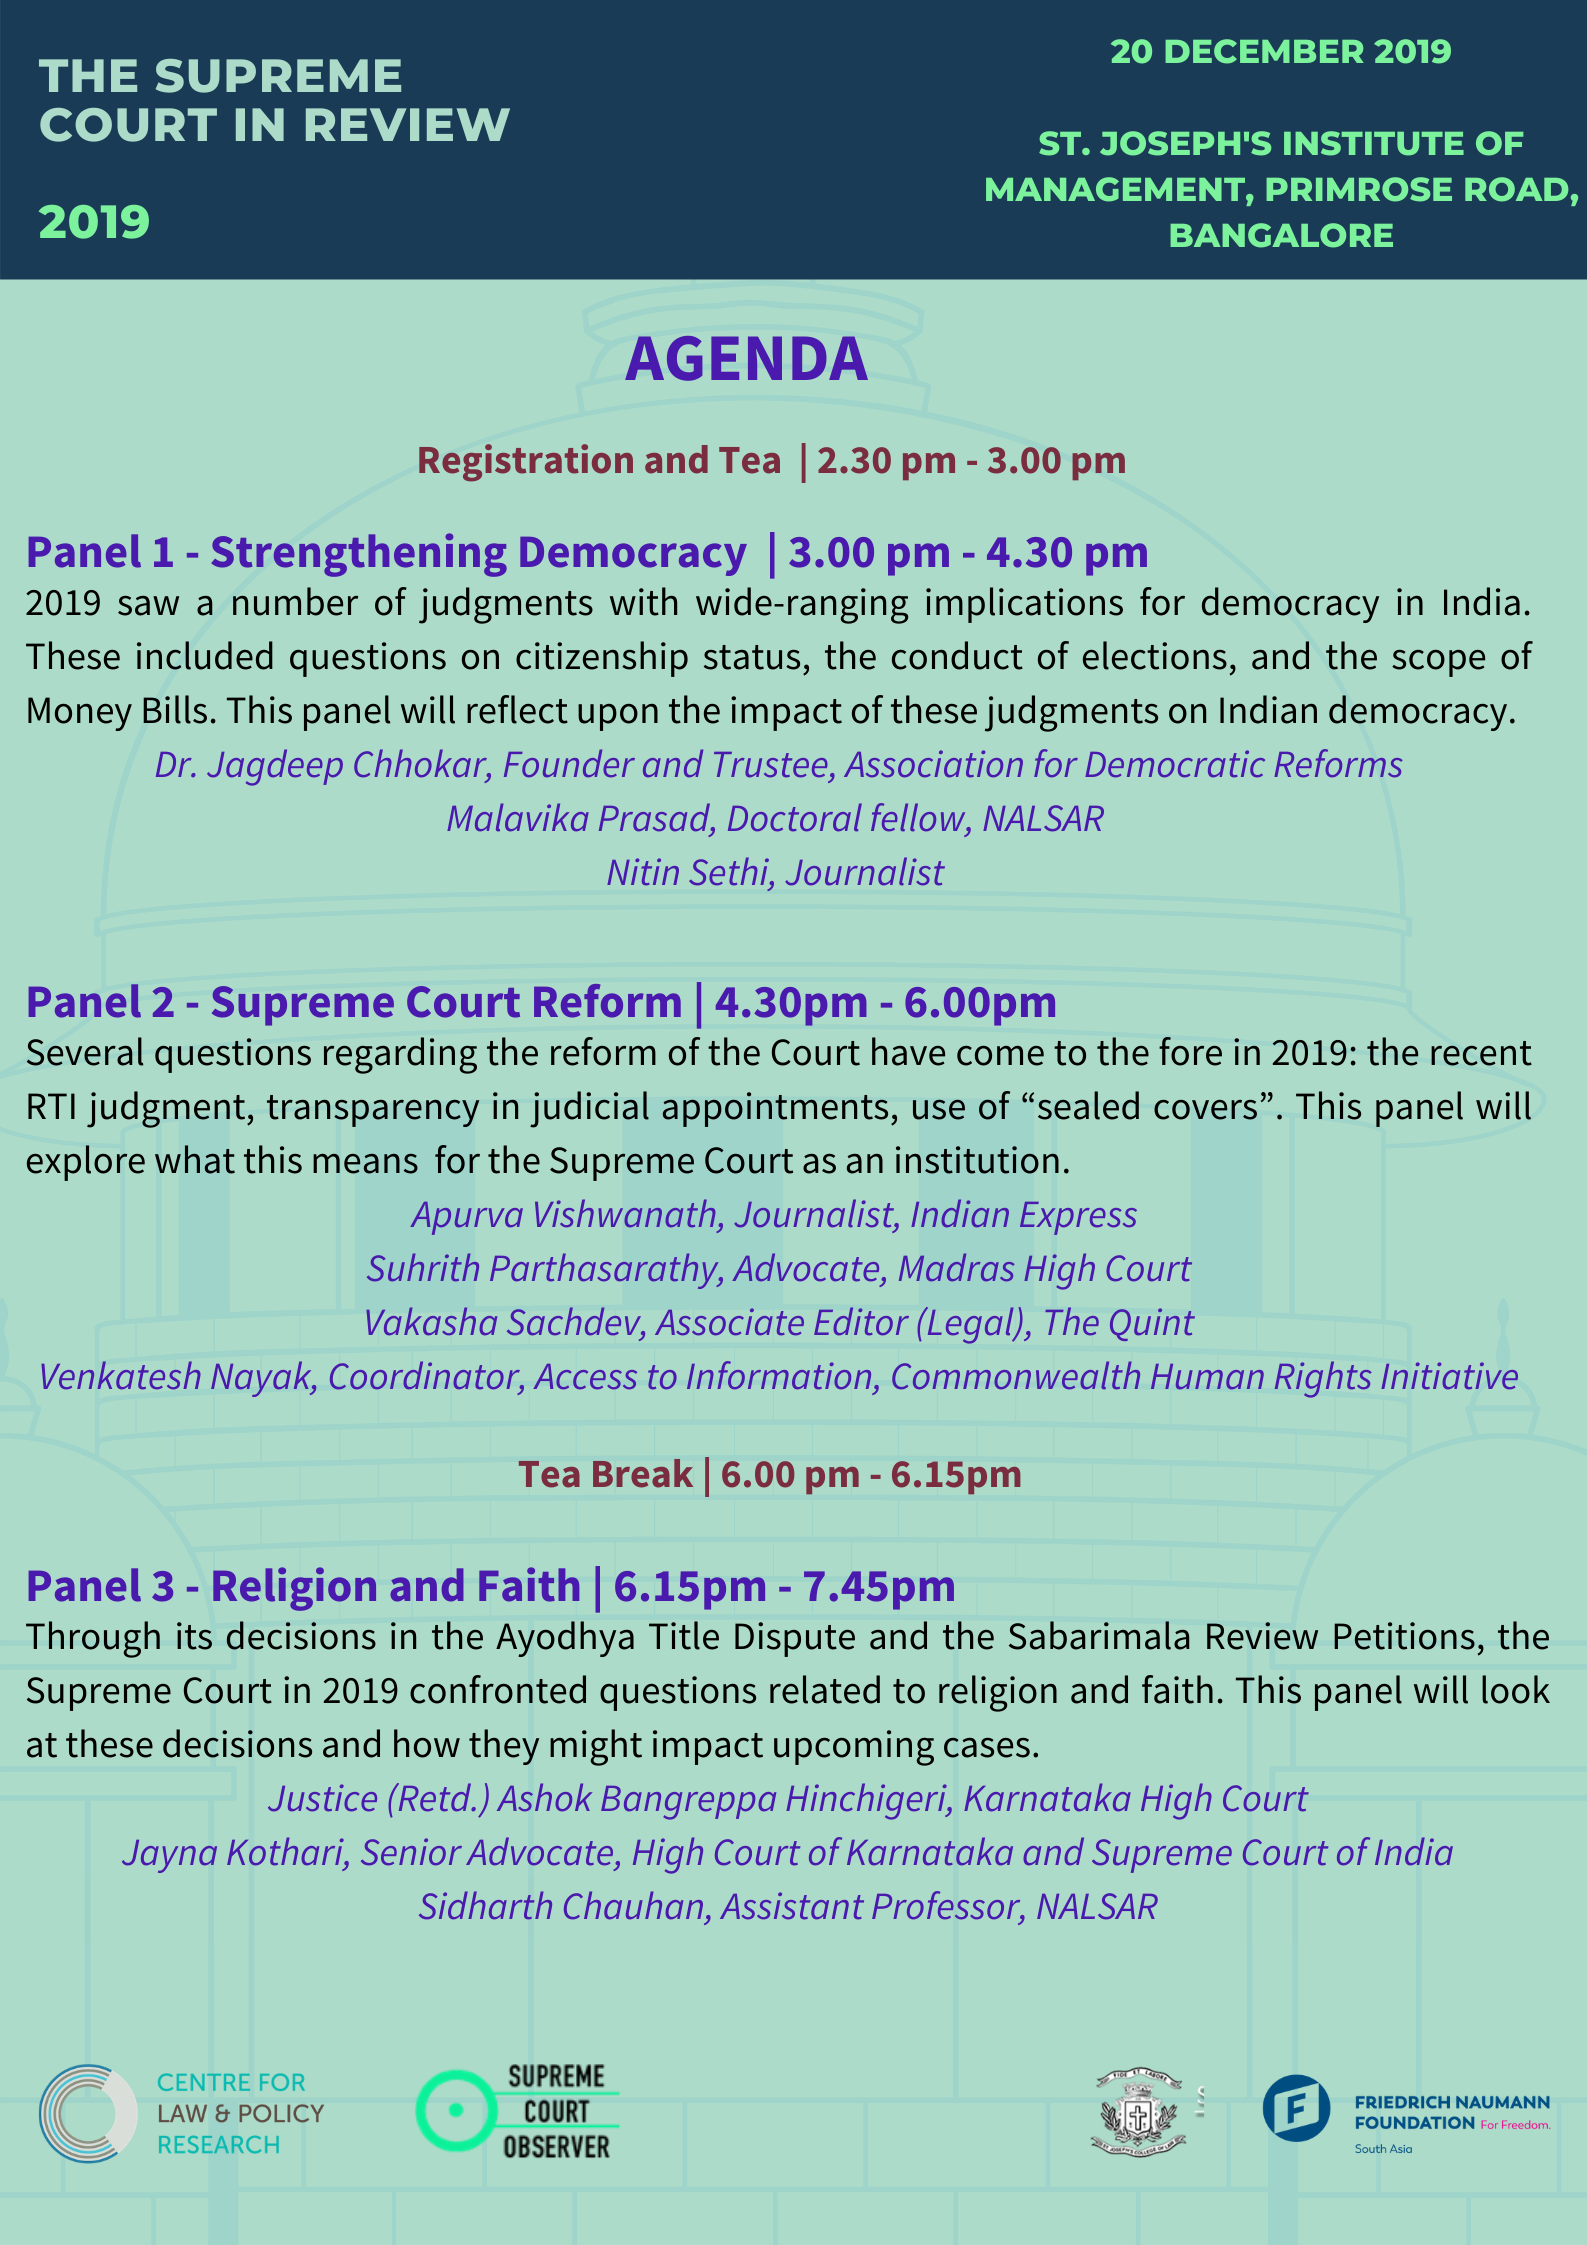 Supreme Court in Review 2019 - Agenda